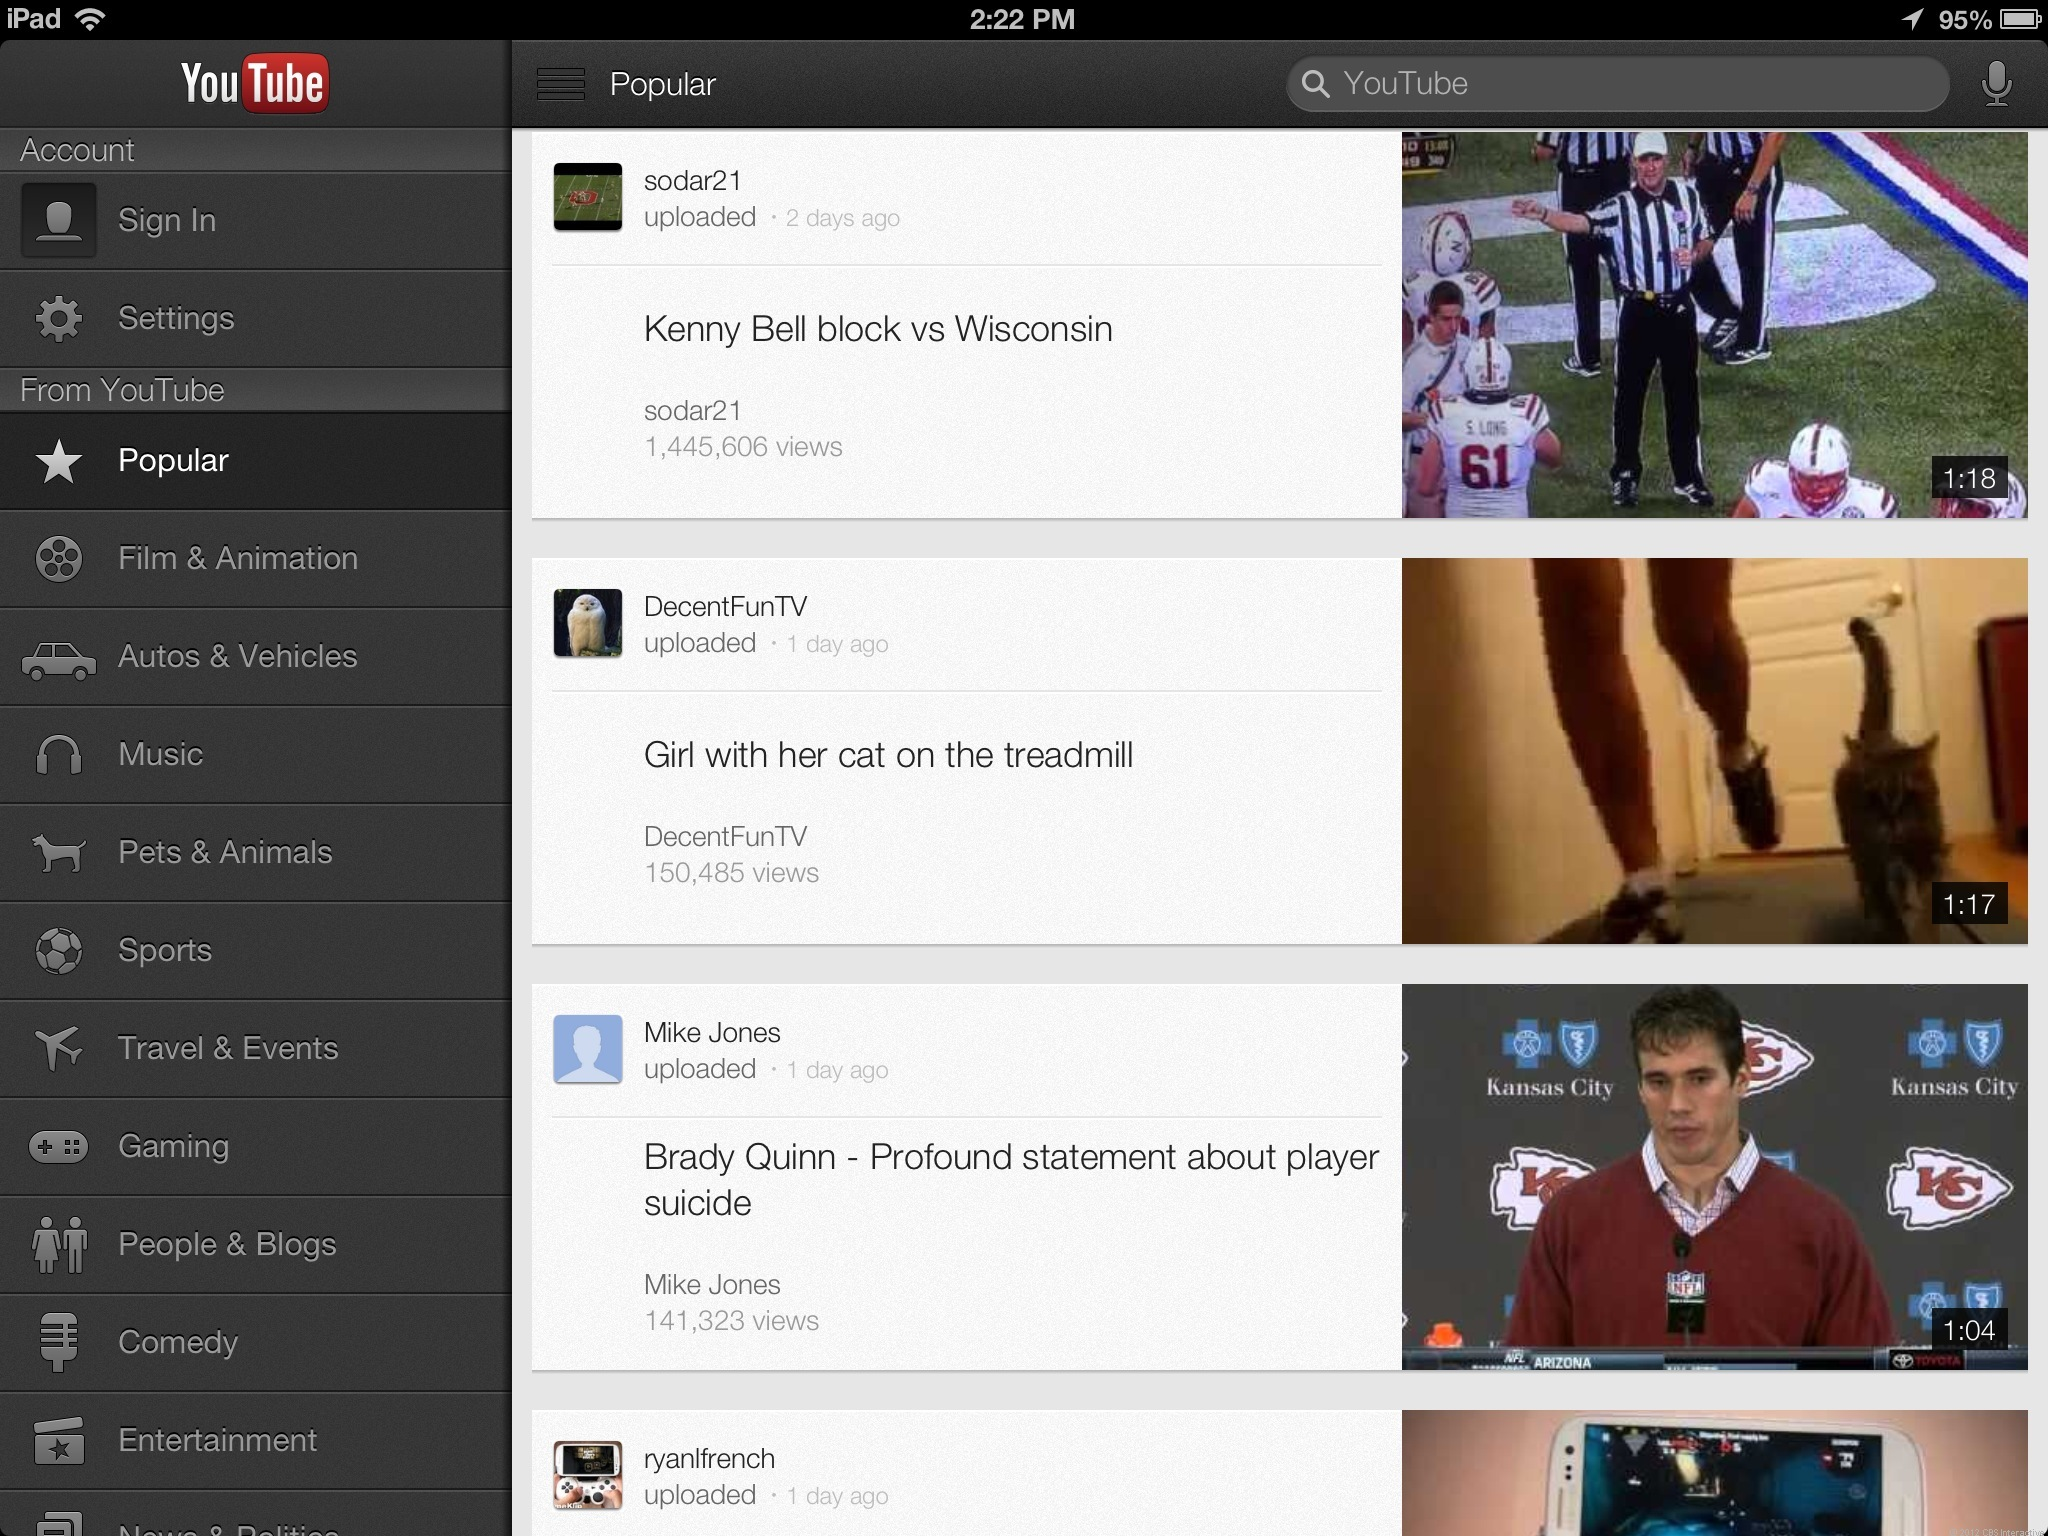 The new YouTube update brings iPad support.